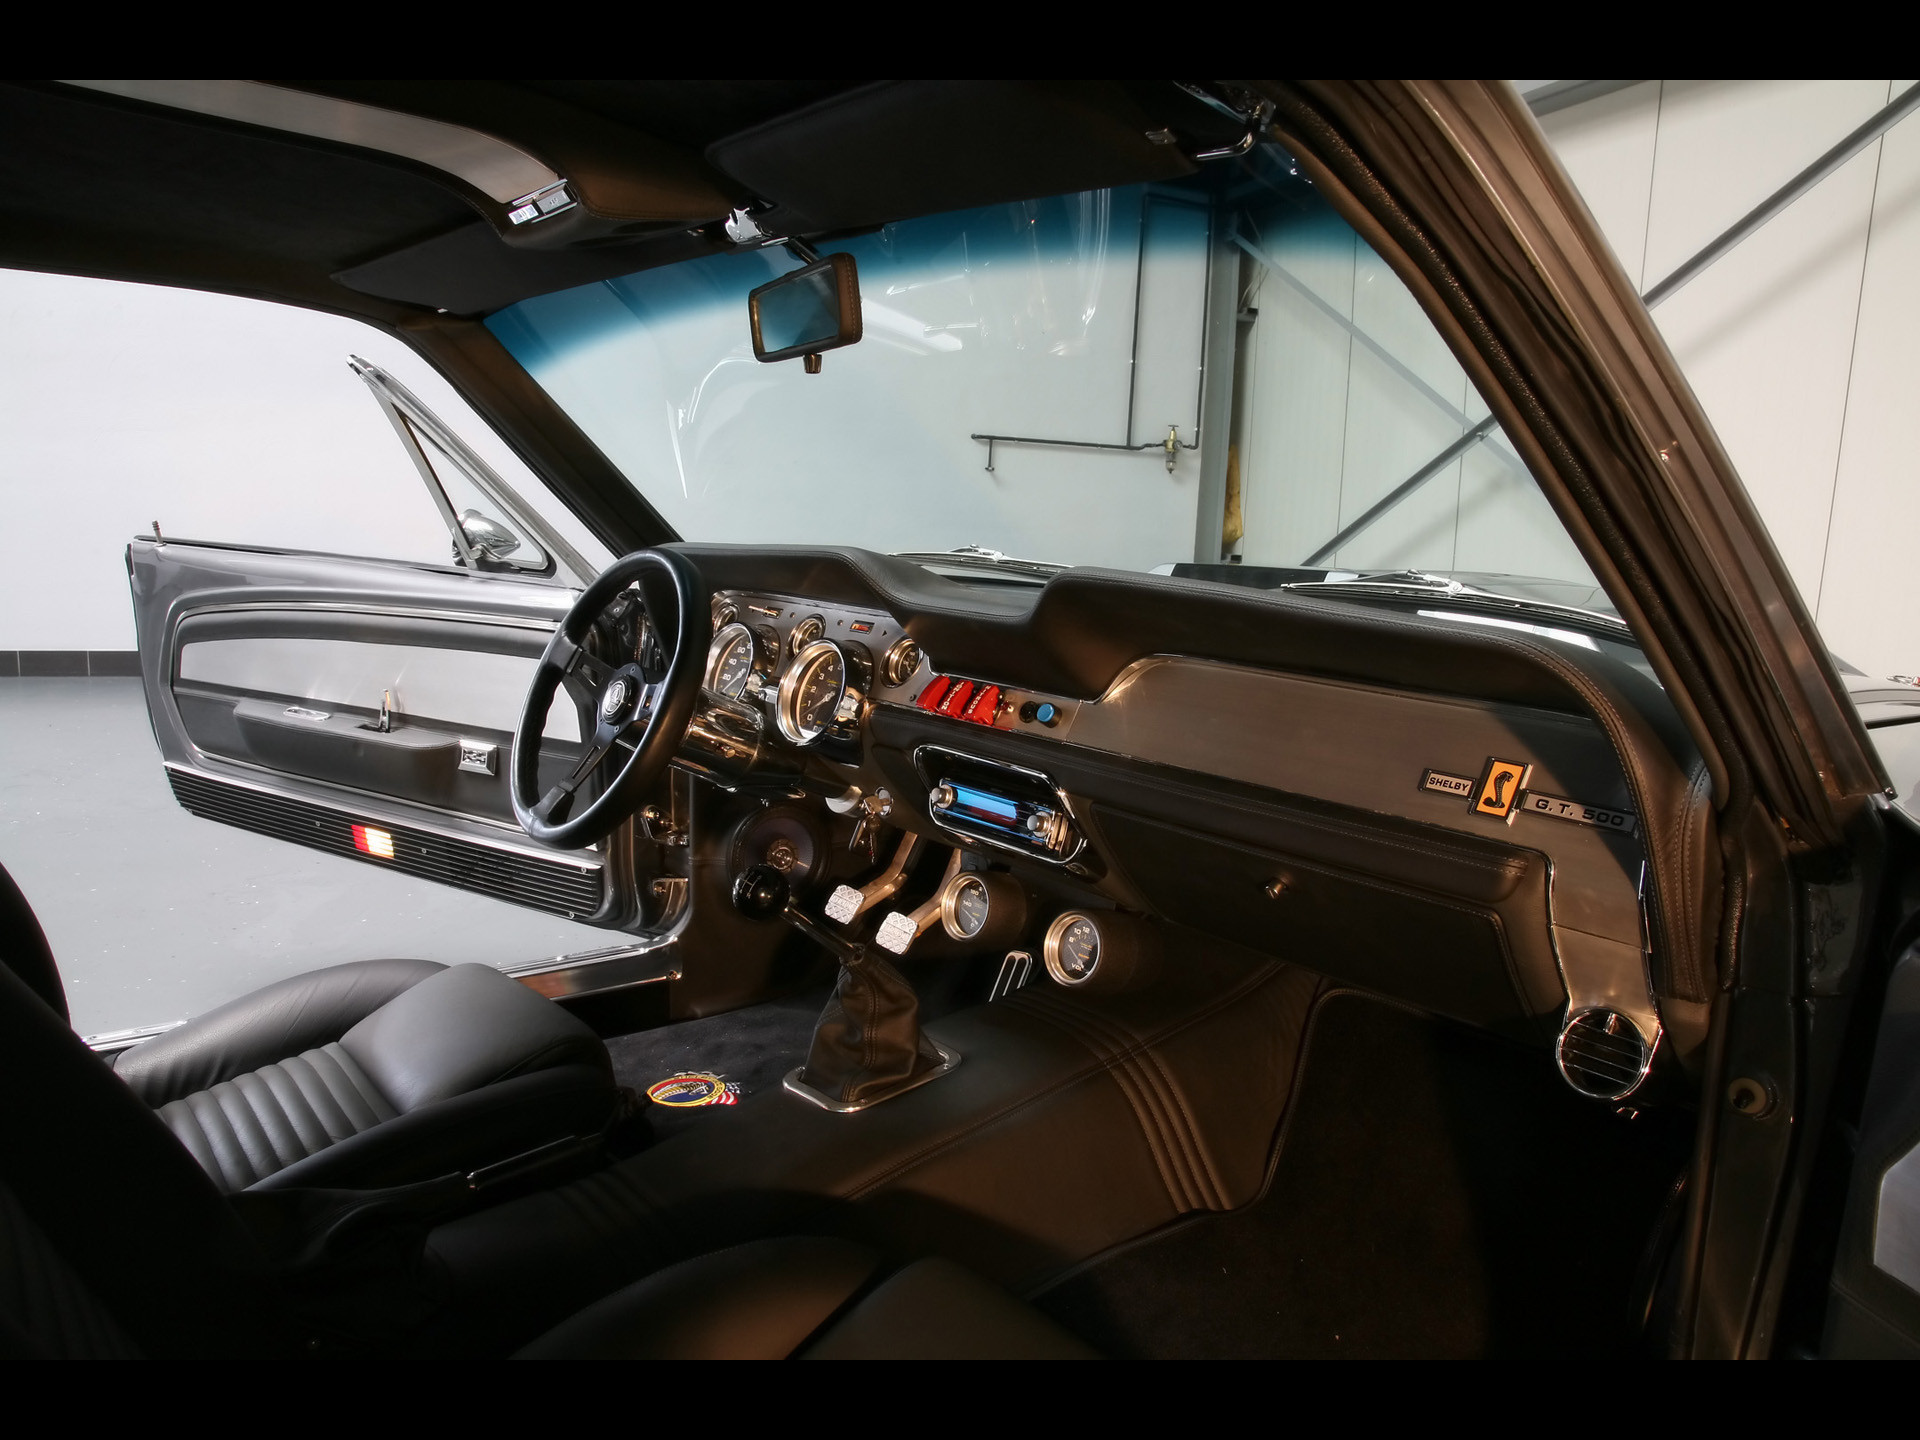 67 Shelby GT500 Eleanor | 2009 Wheelsandmore Mustang Shelby GT500 Eleanor –  Interior 2 .